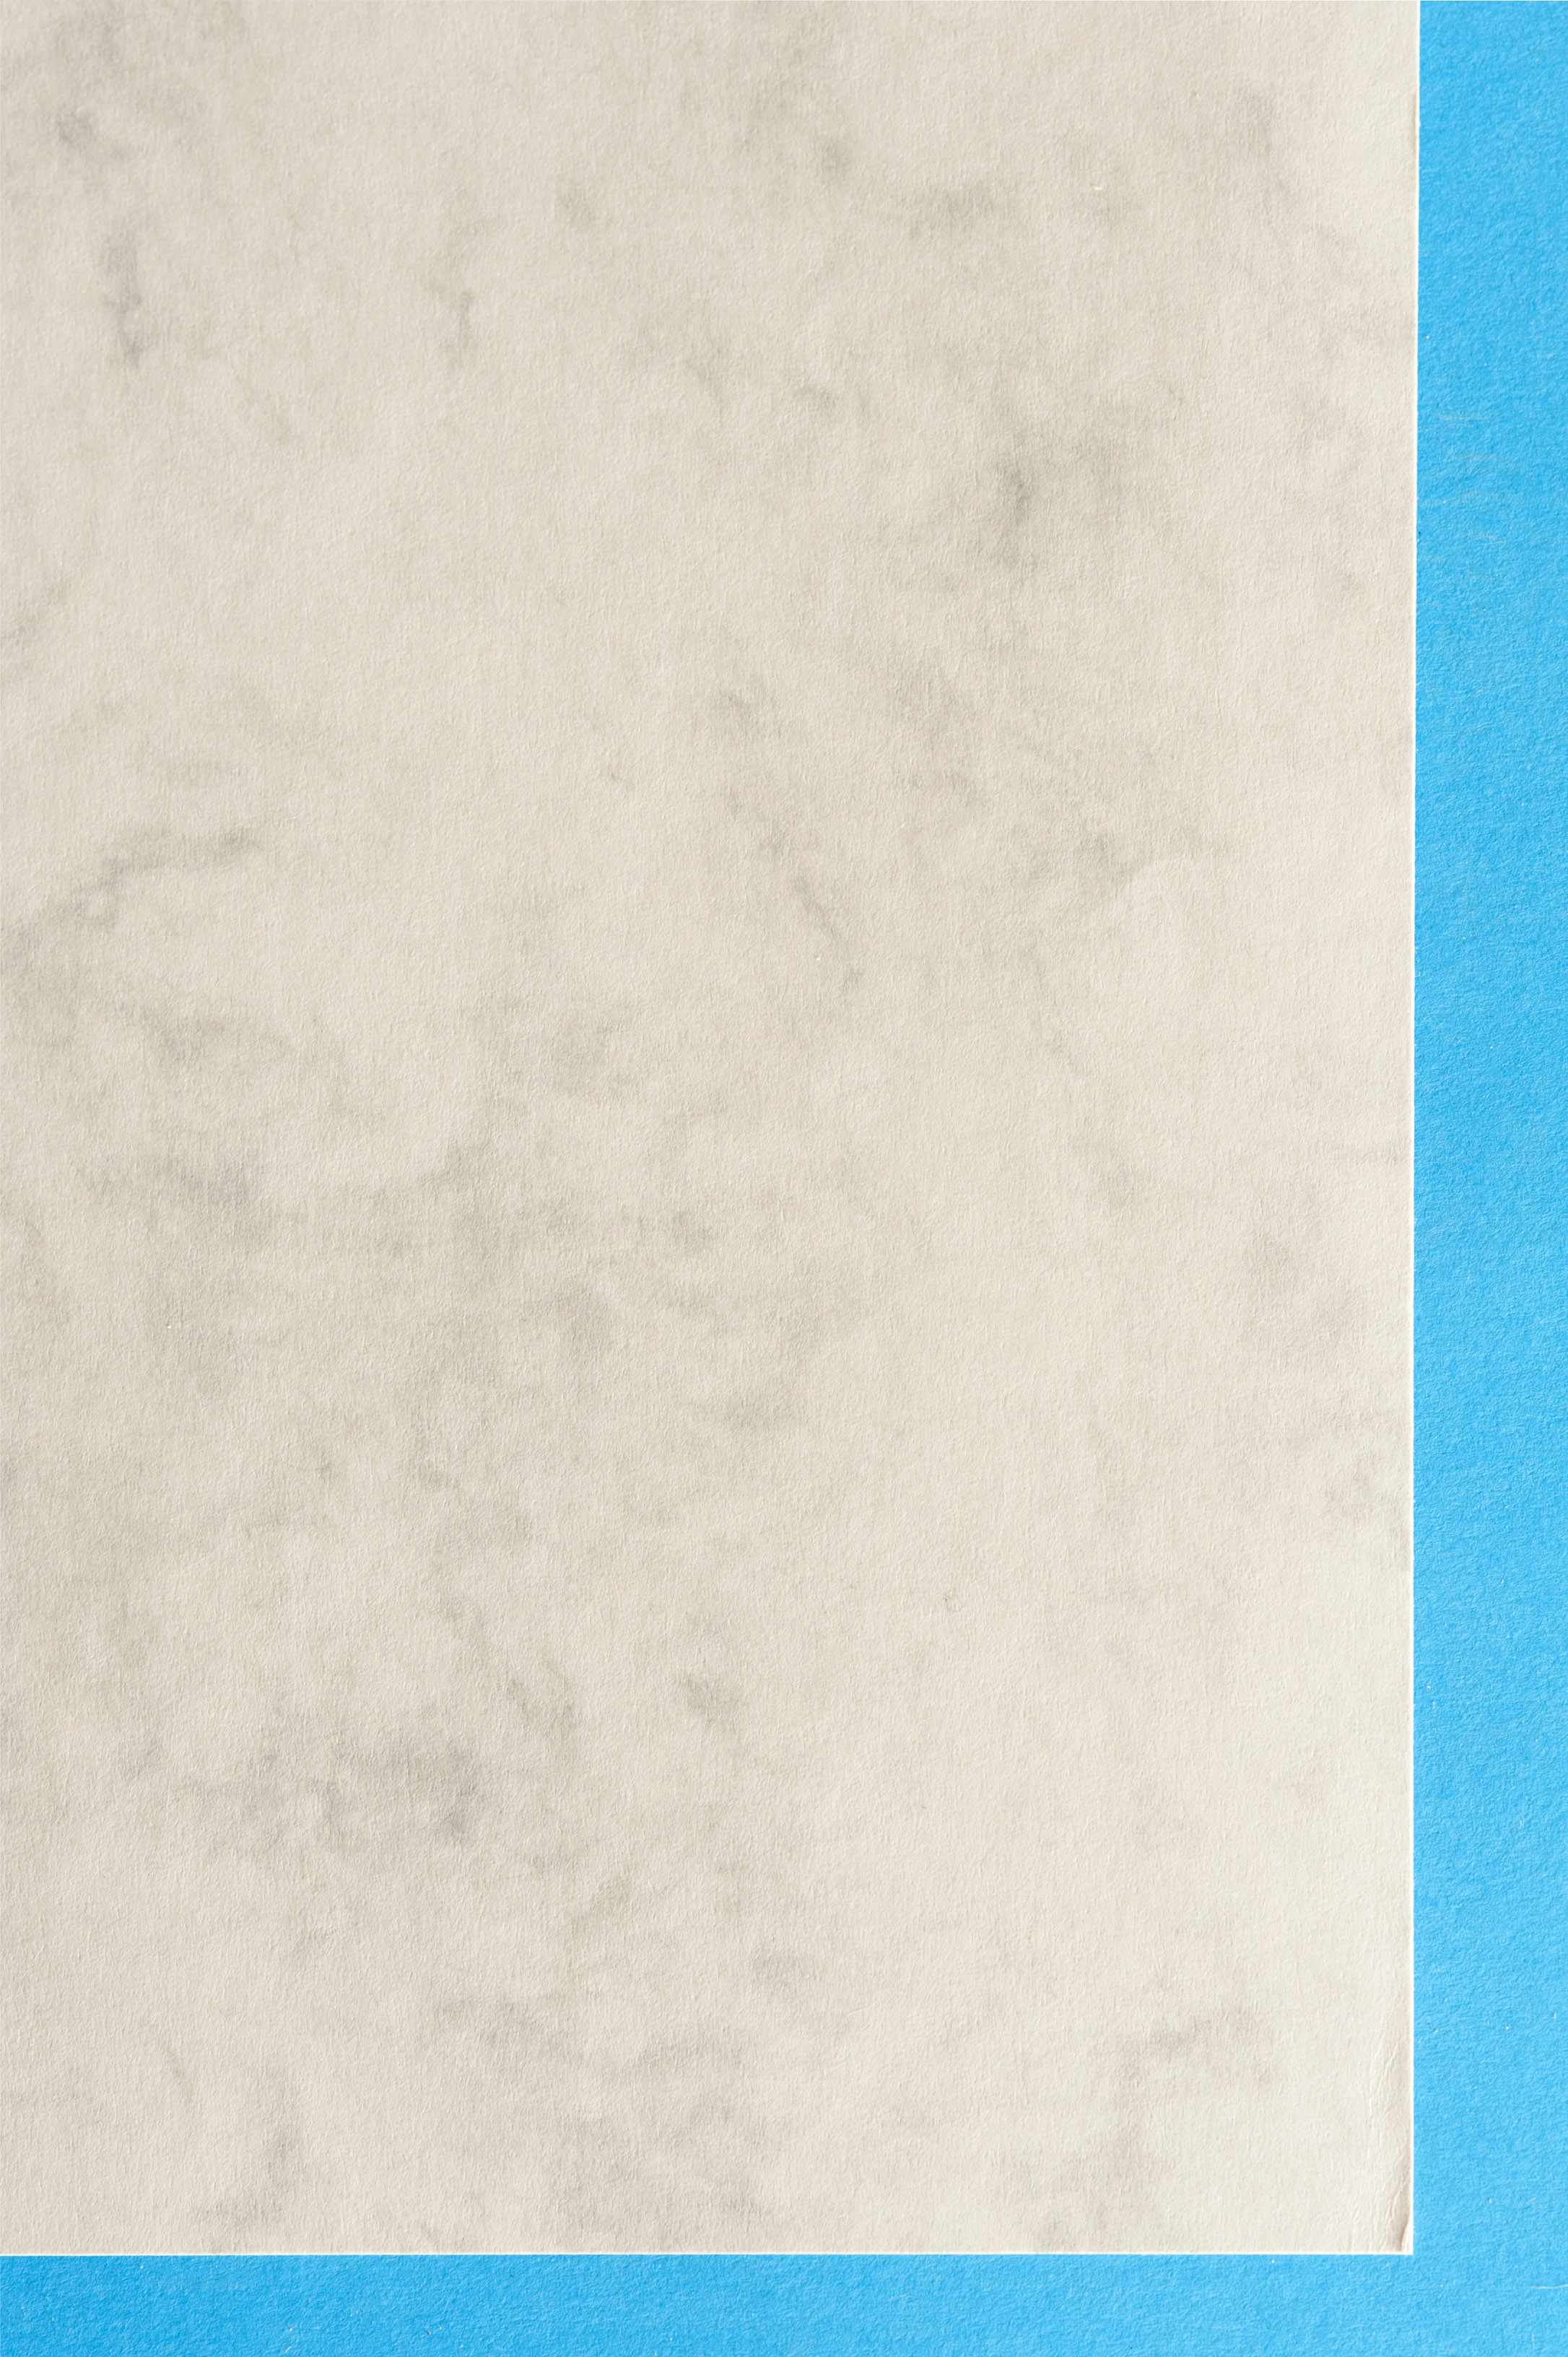 marbled paper with a contrasting blue border